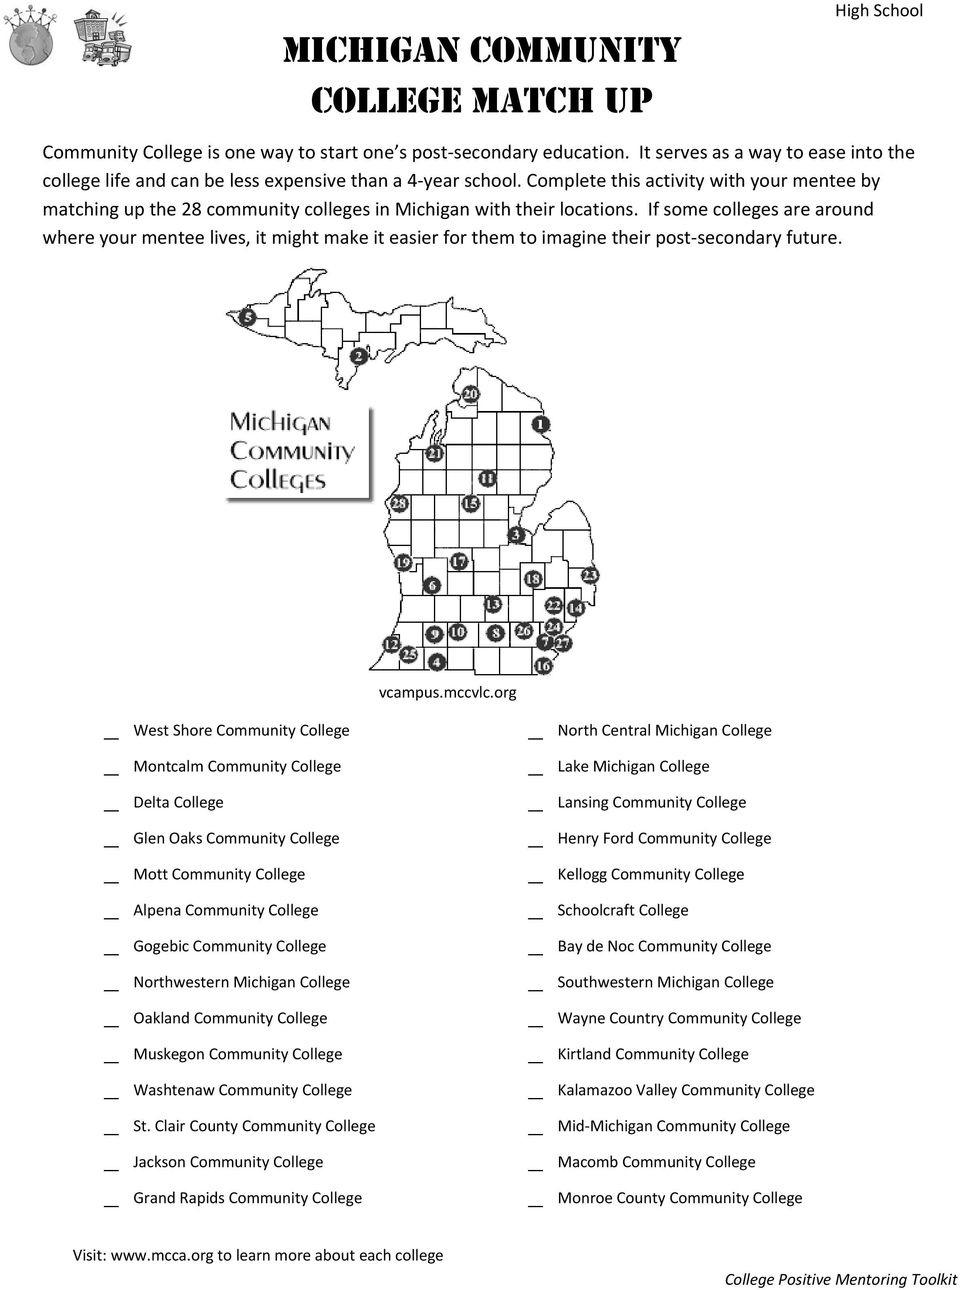 Complete this activity with your mentee by matching up the 28 community colleges in Michigan with their locations.